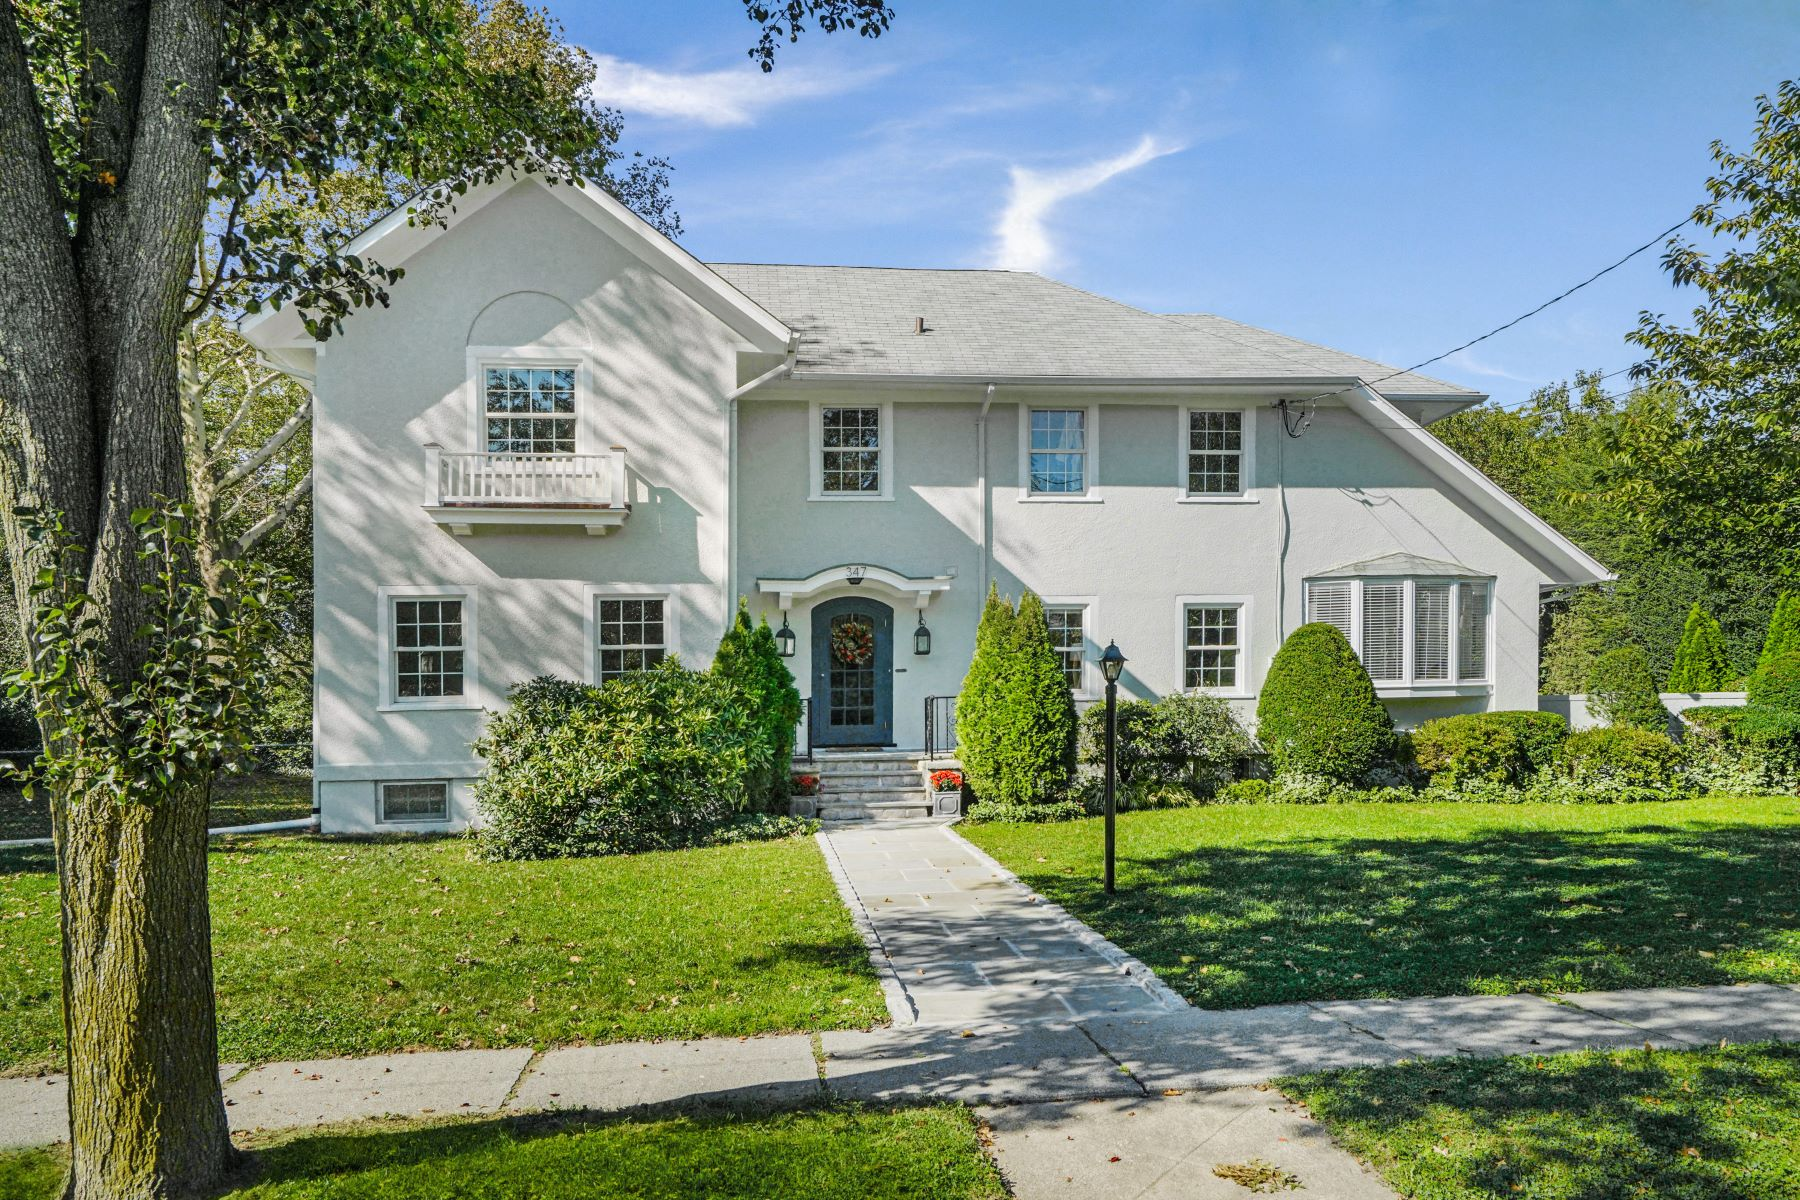 Single Family Home for Sale at Design Perfection 347 Highbrook Avenue, Pelham, New York, 10803 United States